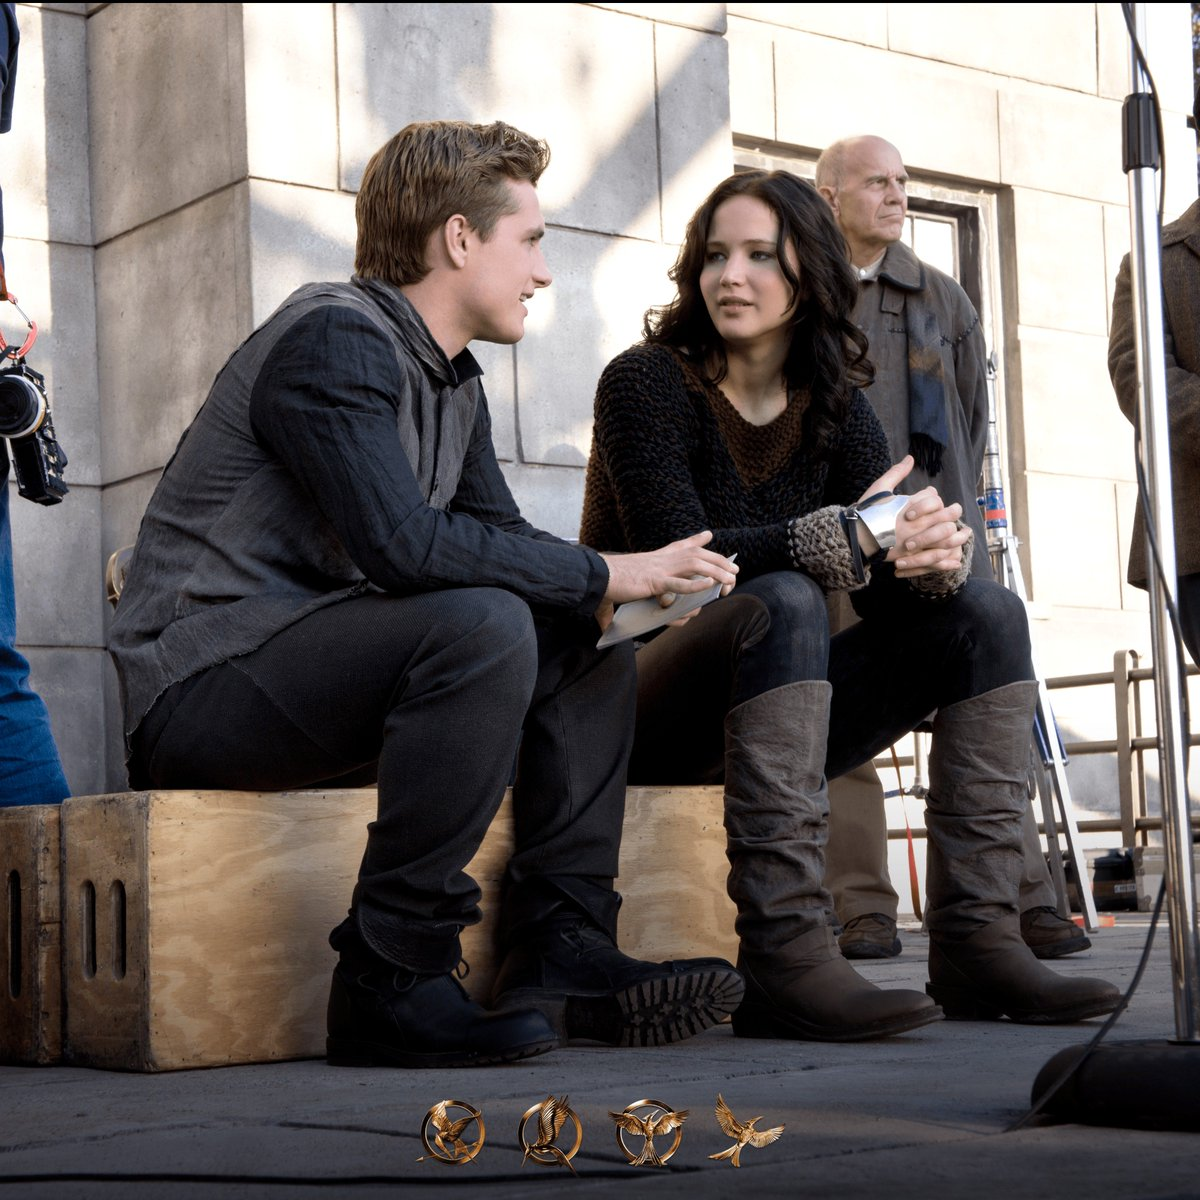 Behind the scenes with our favorites from District 12! 🏹 #HungerGames #TBT https://t.co/k2p62bNVER